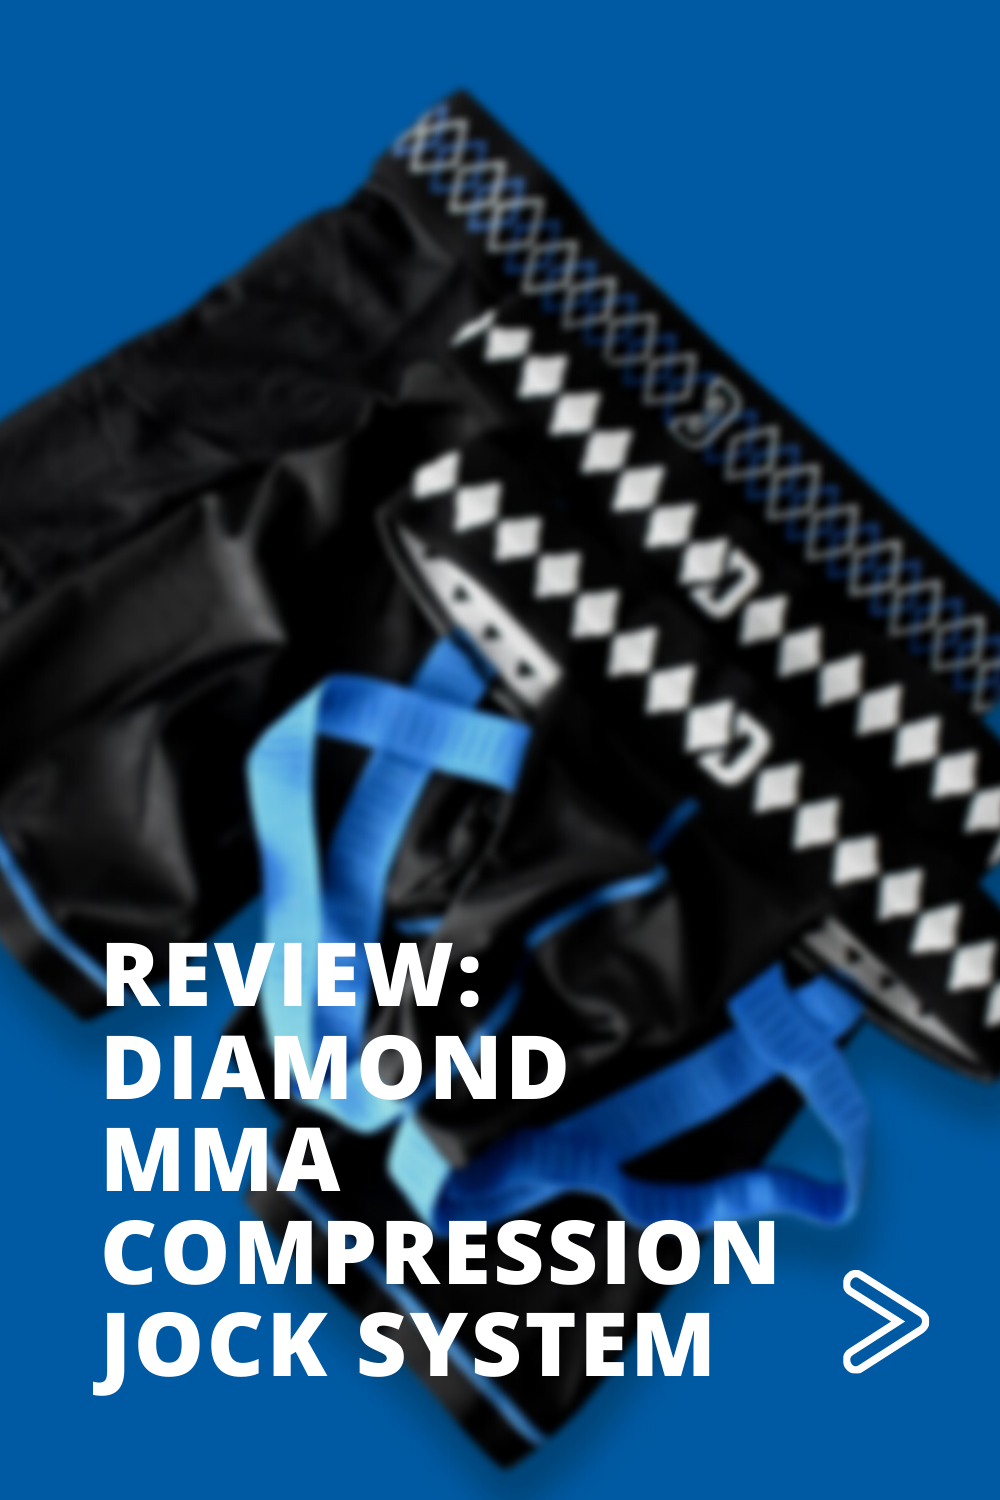 Review: Diamond Compression Jock System